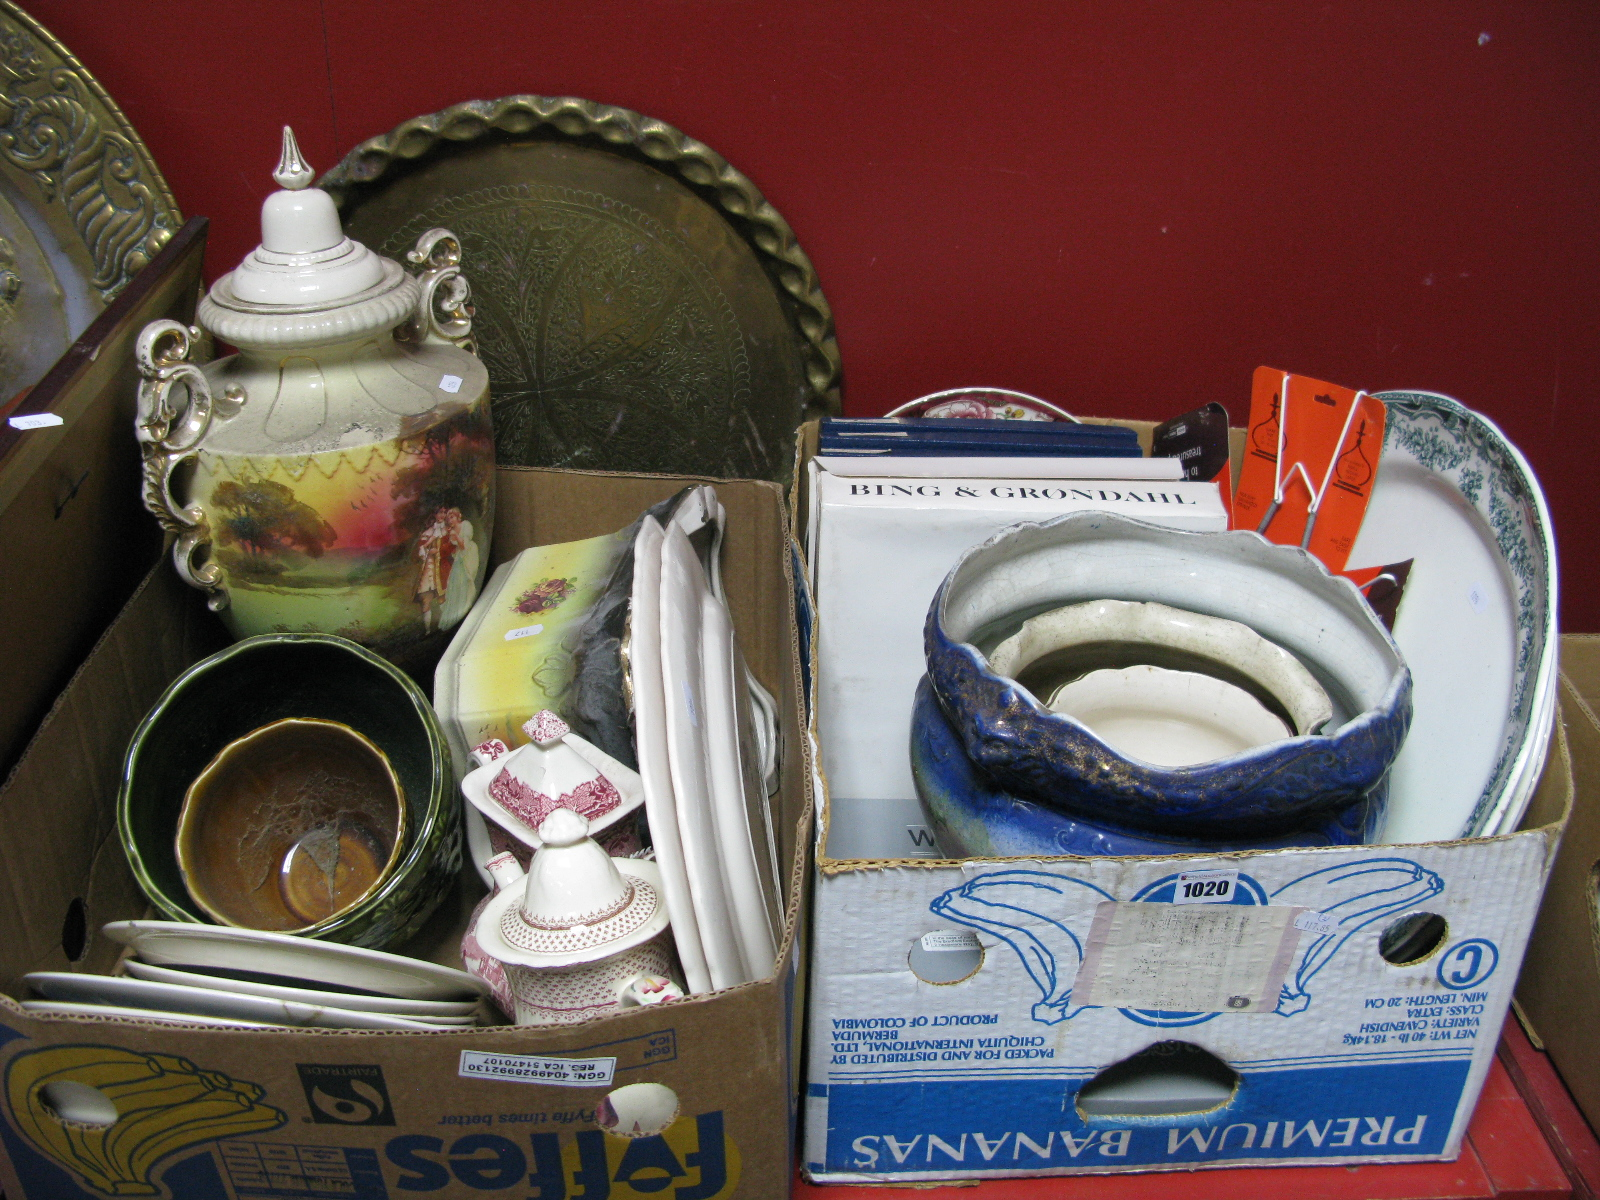 Lot 1020 - Meat Plates, jardinieres, collectors plates, Rington's Tea plates, urn on stand etc:- Two Boxes